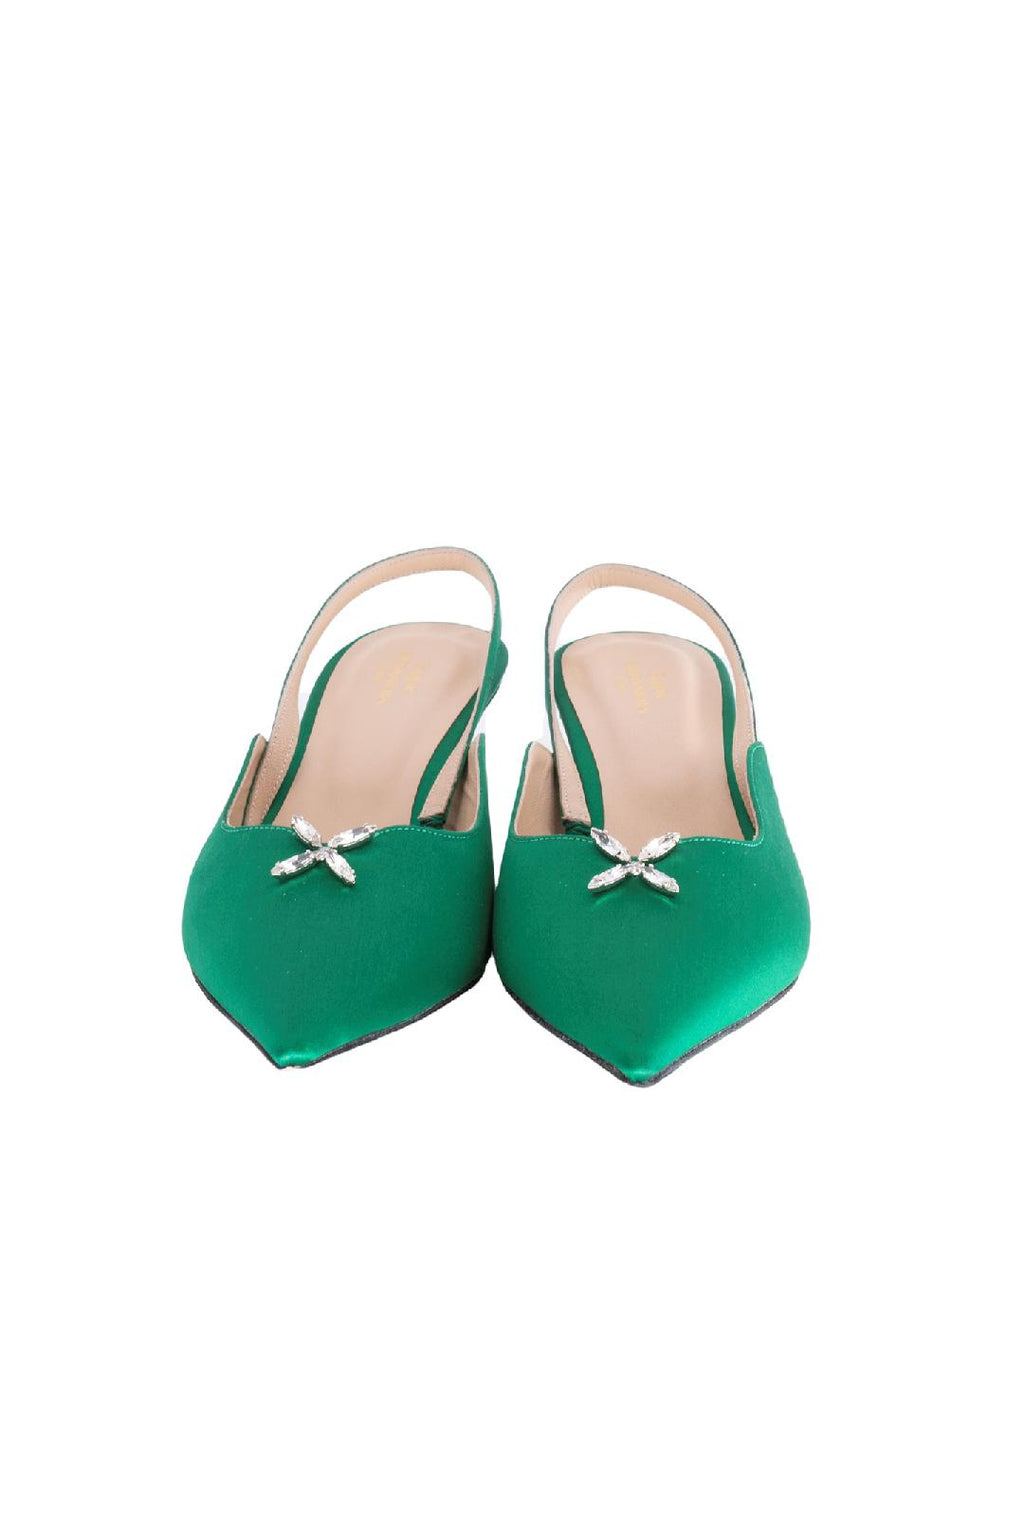 Emerald Green Satin Swarovski Crystal Kitten Heel Pump